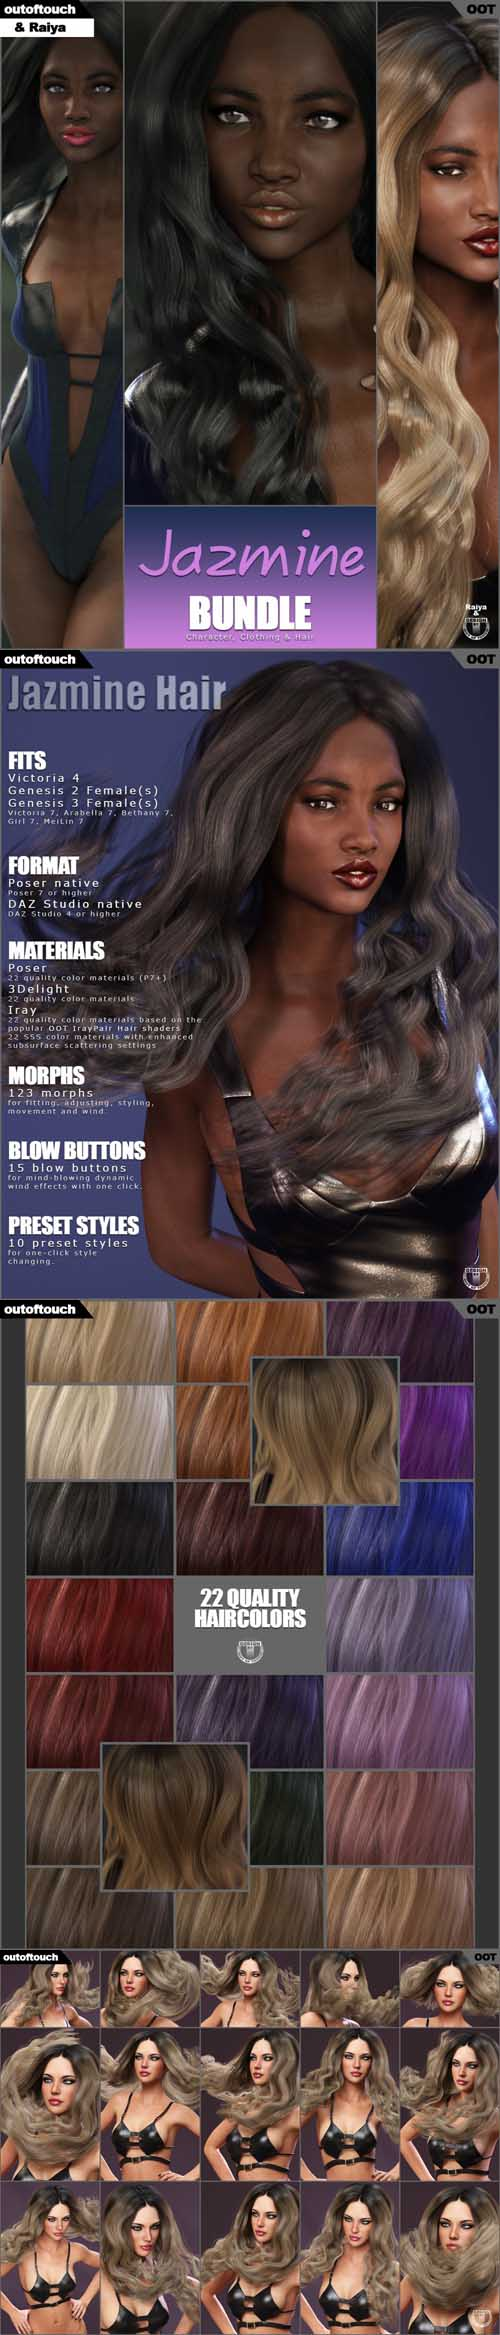 DAZ3D Jazmine Character, Hair & Clothing Bundle